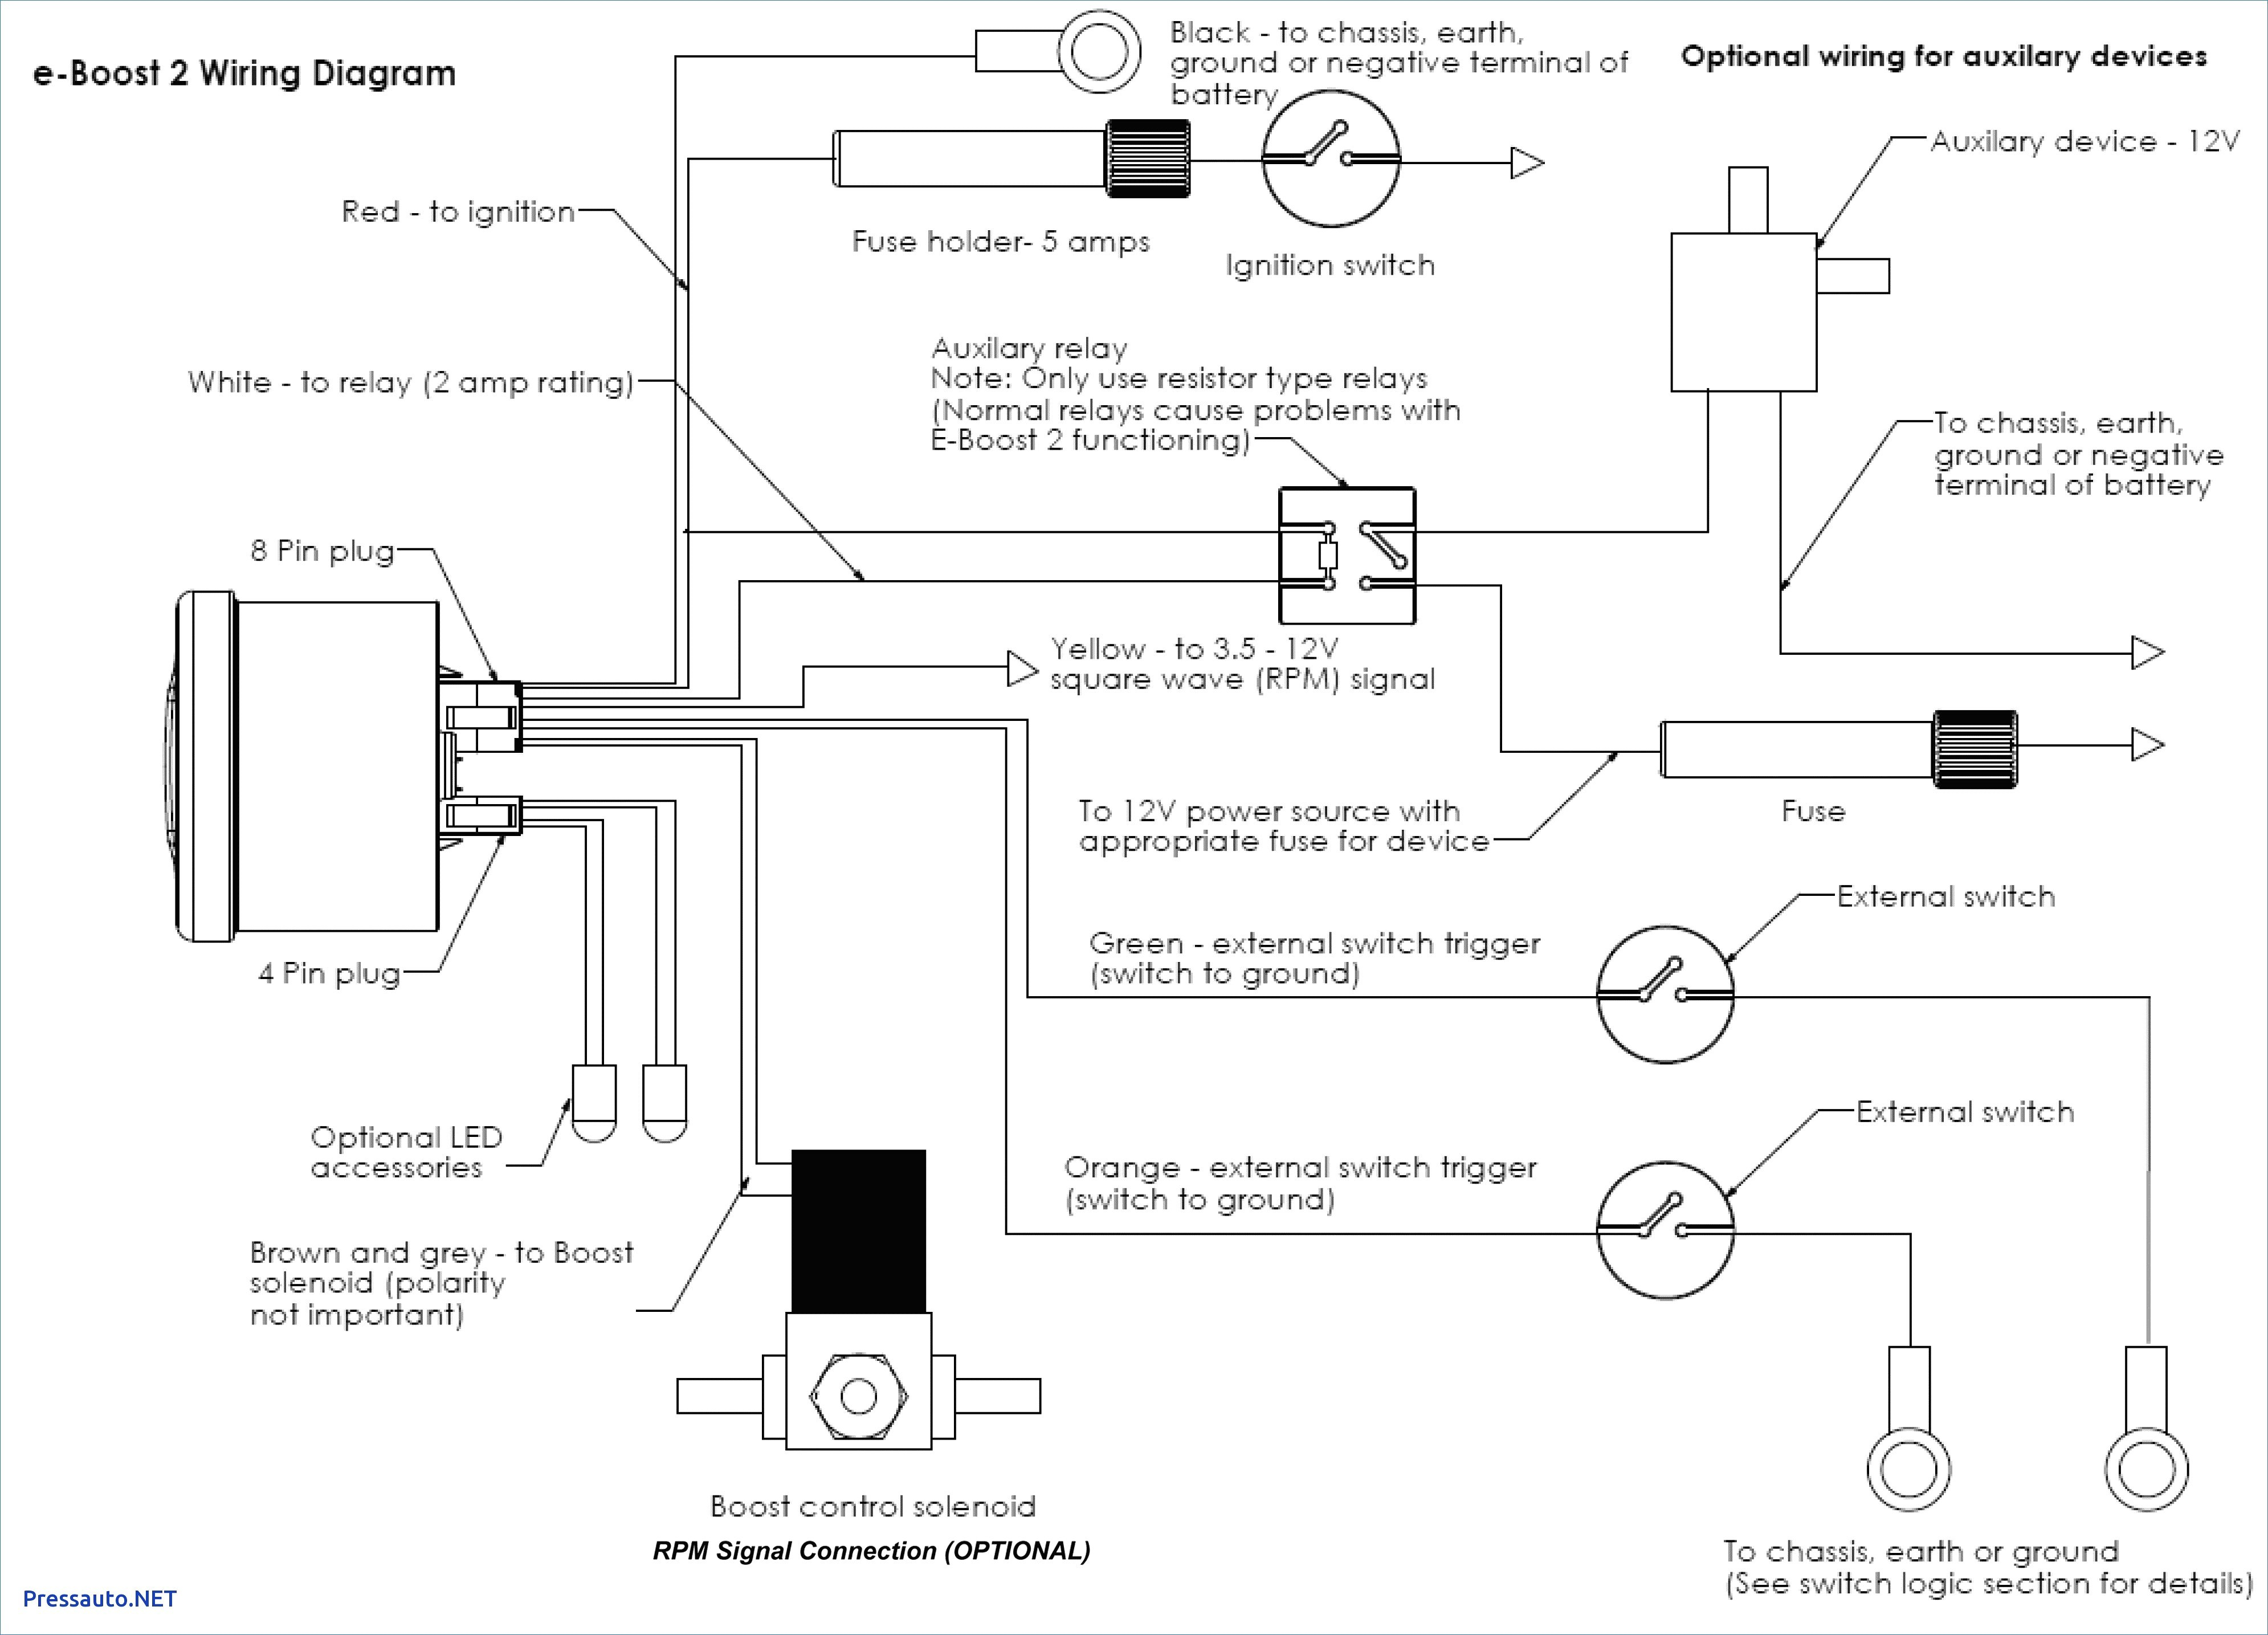 Supco Rco410 Wiring Diagram - Wiring Diagram Description - Refrigerator Compressor Wiring Diagram